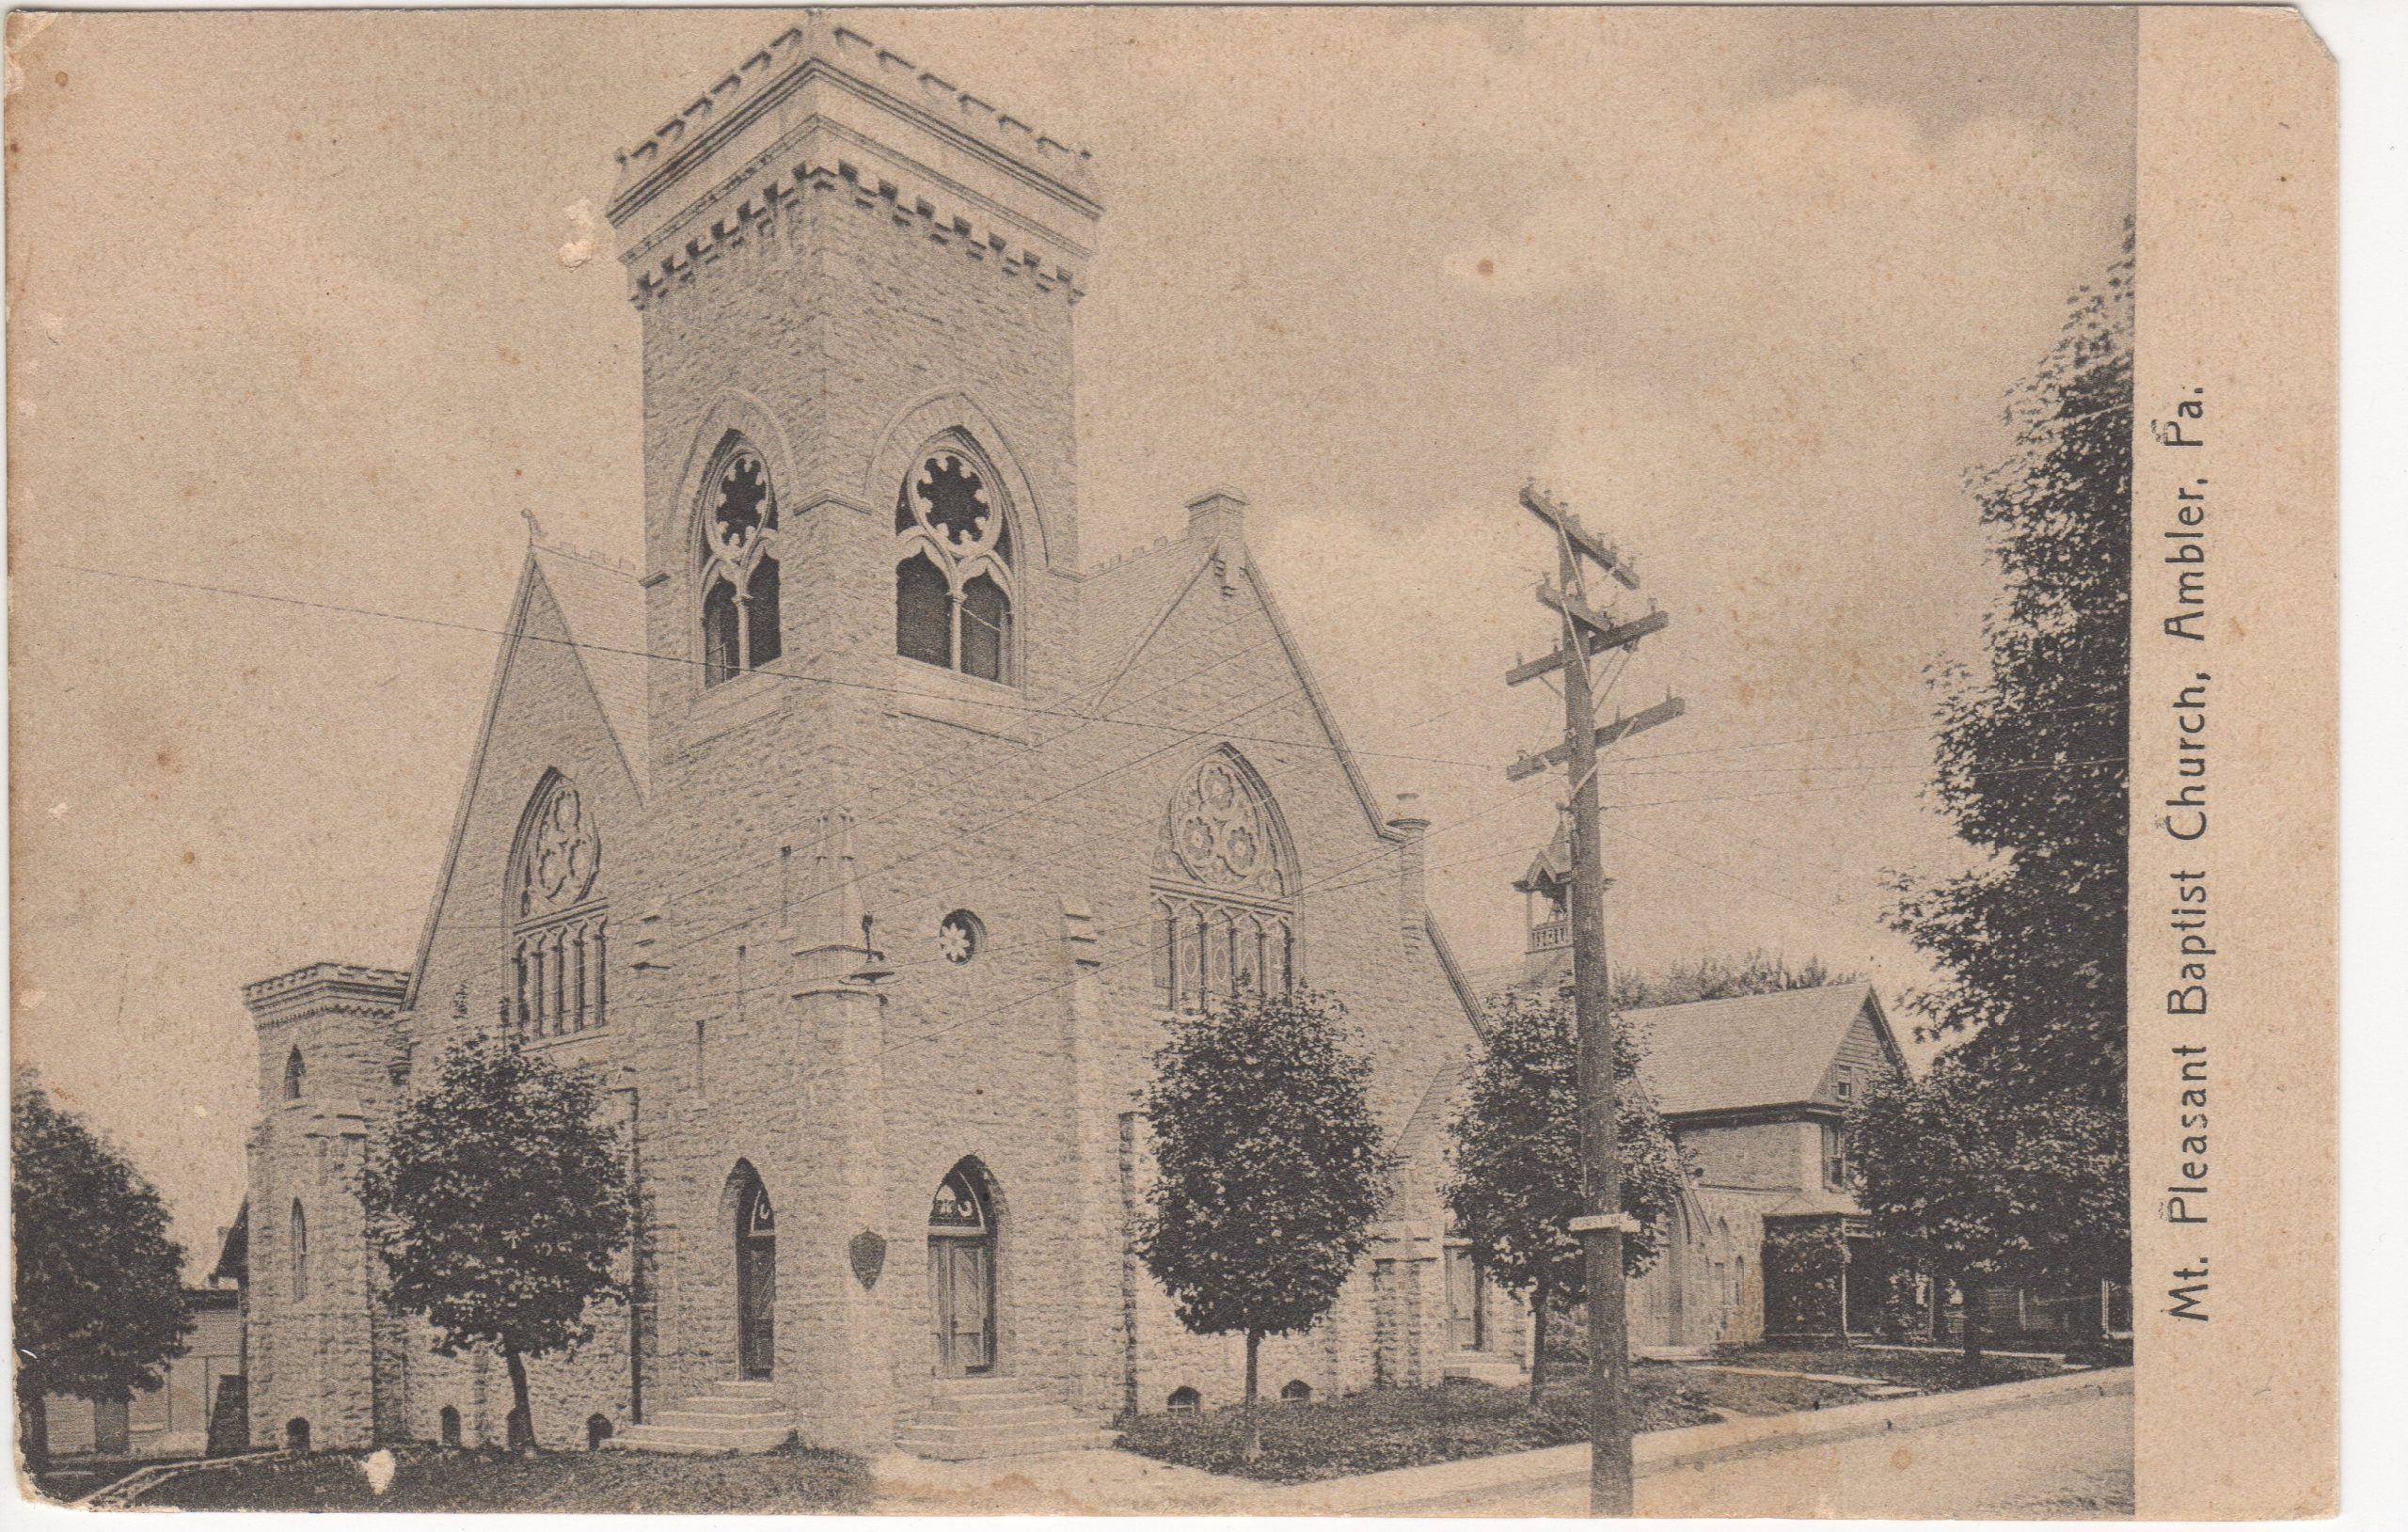 4125.10 Ambler Pa Postcard_Mt Pleasant Baptist Church